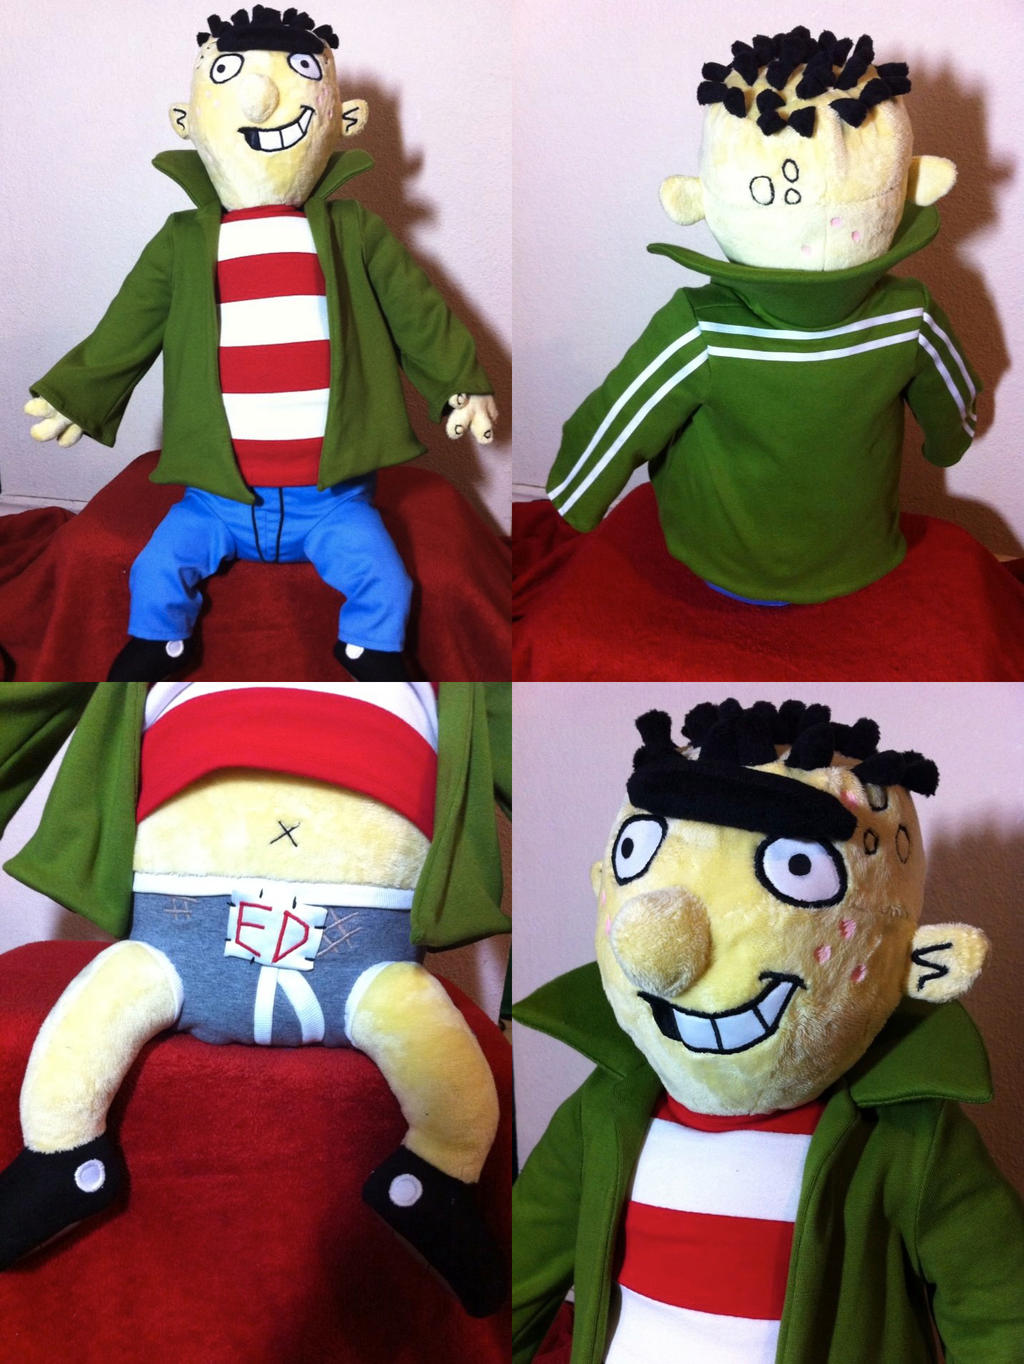 Ed Edd Eddy Plush Pictures to Pin on Pinterest - PinsDaddy